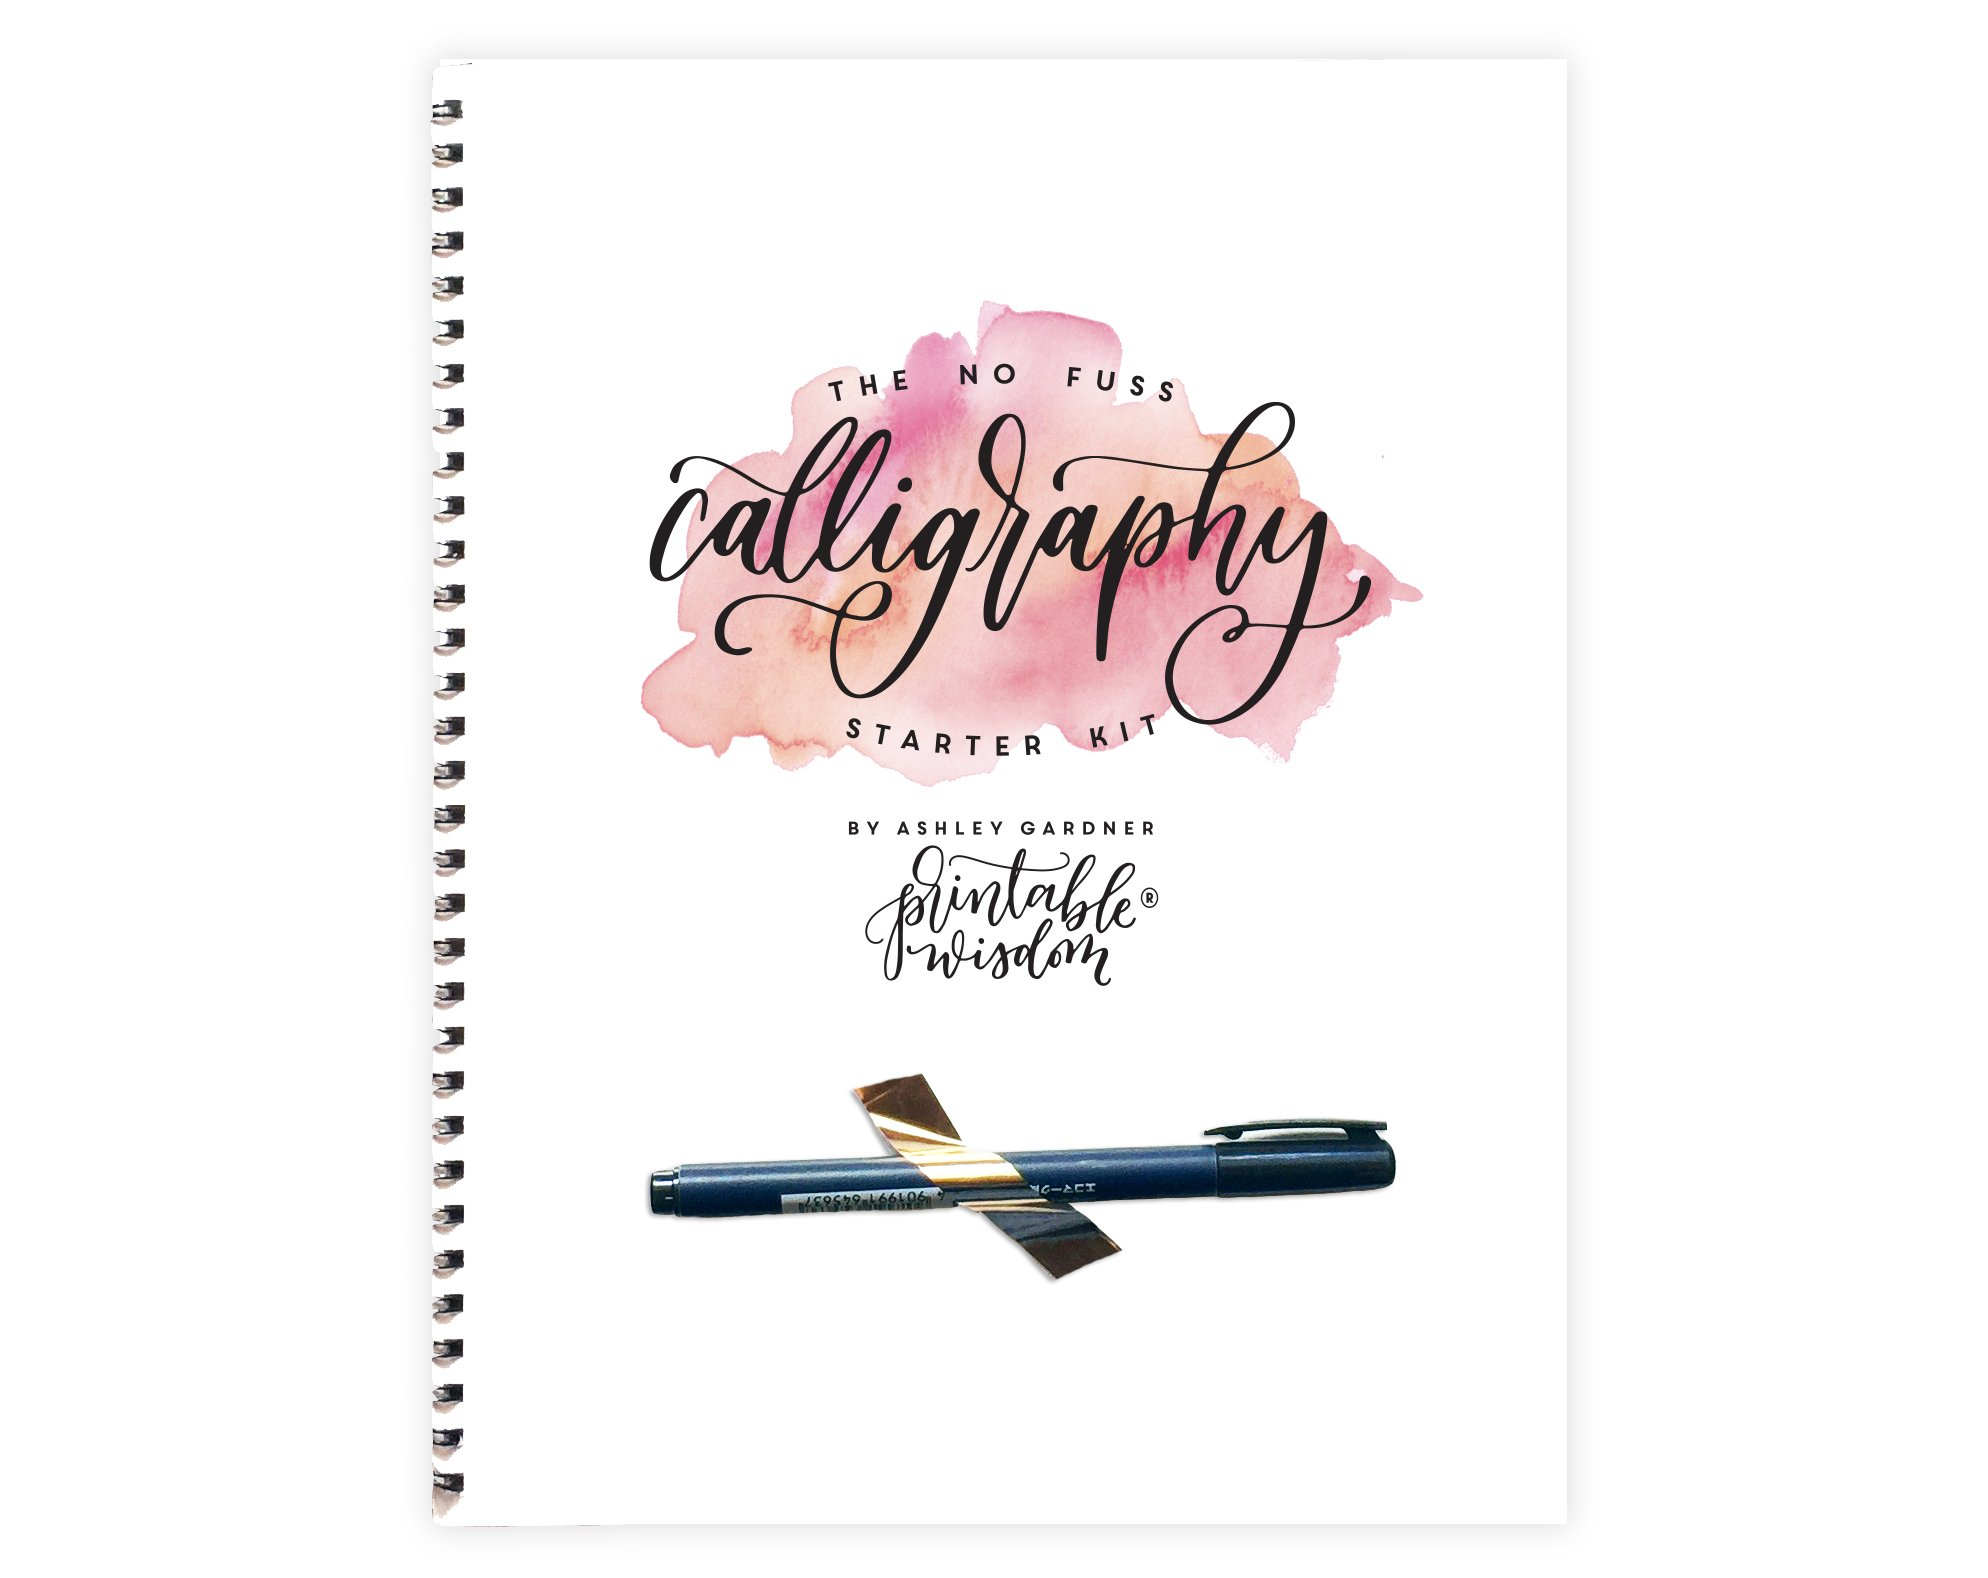 No Fuss Original Calligraphy Kit, Learn calligraphy for beginners and step by step instructions, calligraphy pen included, learn modern hand lettering, modern calligraphy